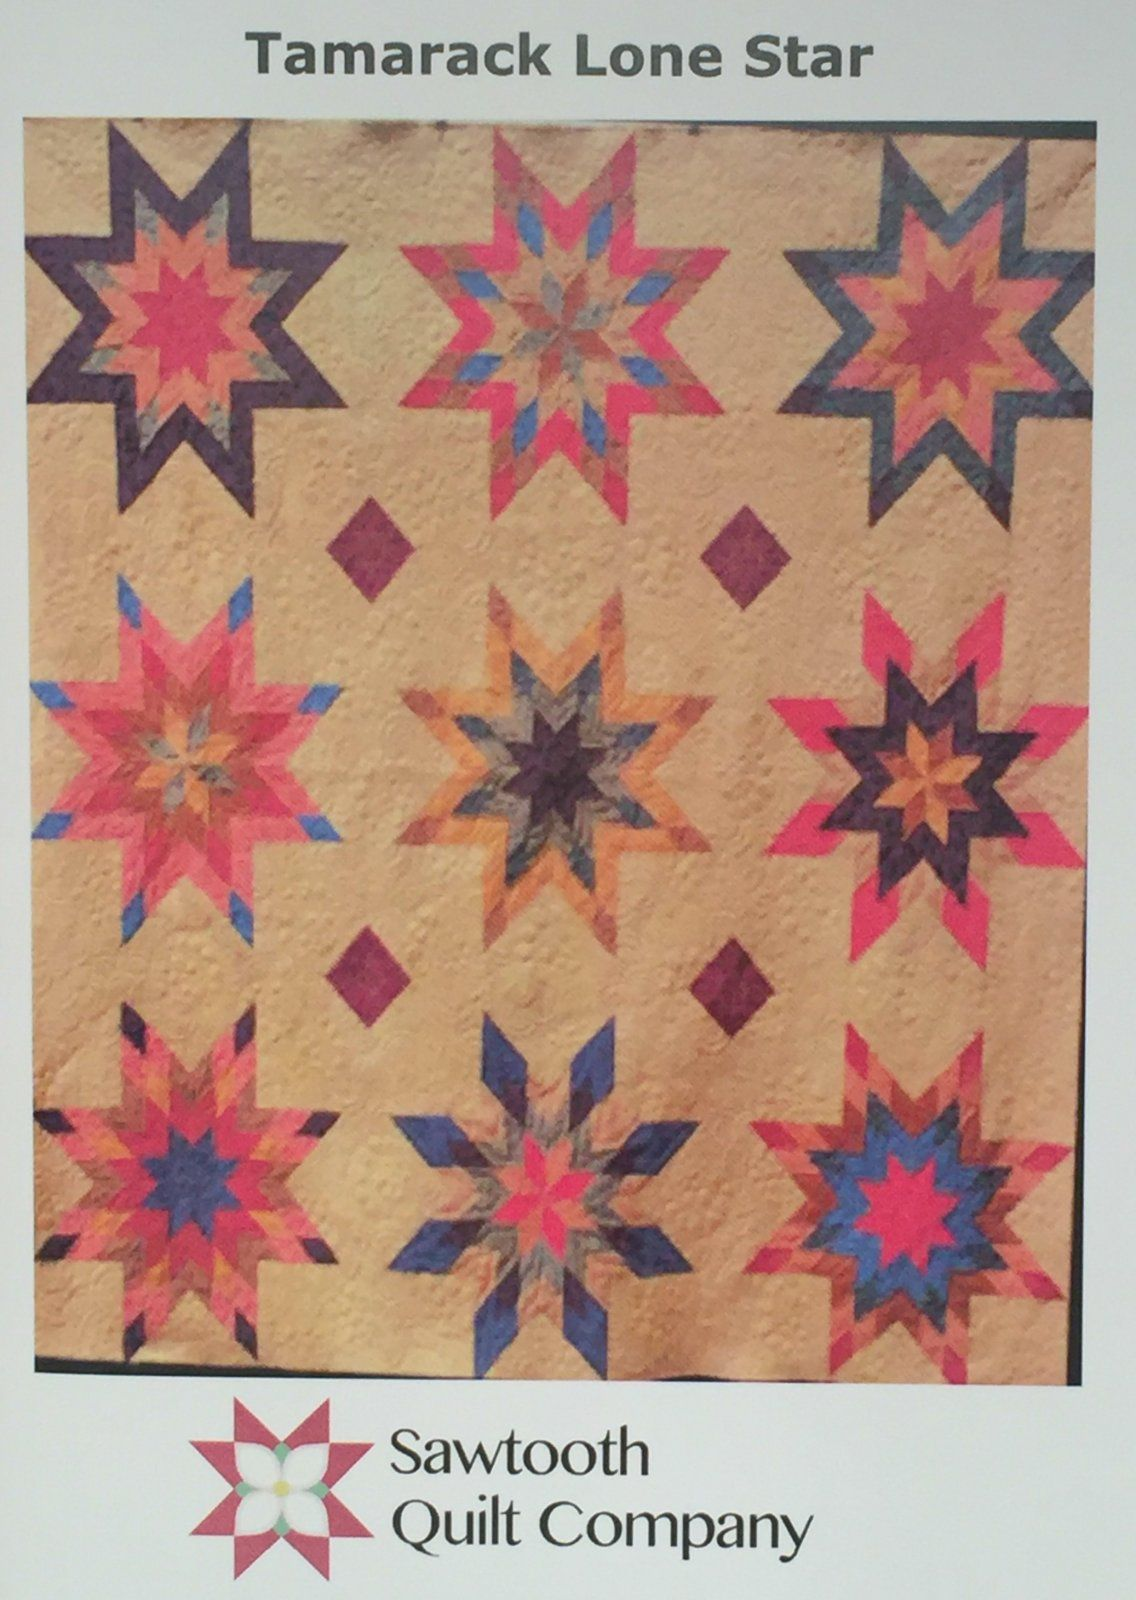 Tamarack Lone Star quilt pattern, a large, strip-pieced rustic Lone Star and Sawtooth Quilt Company original design.